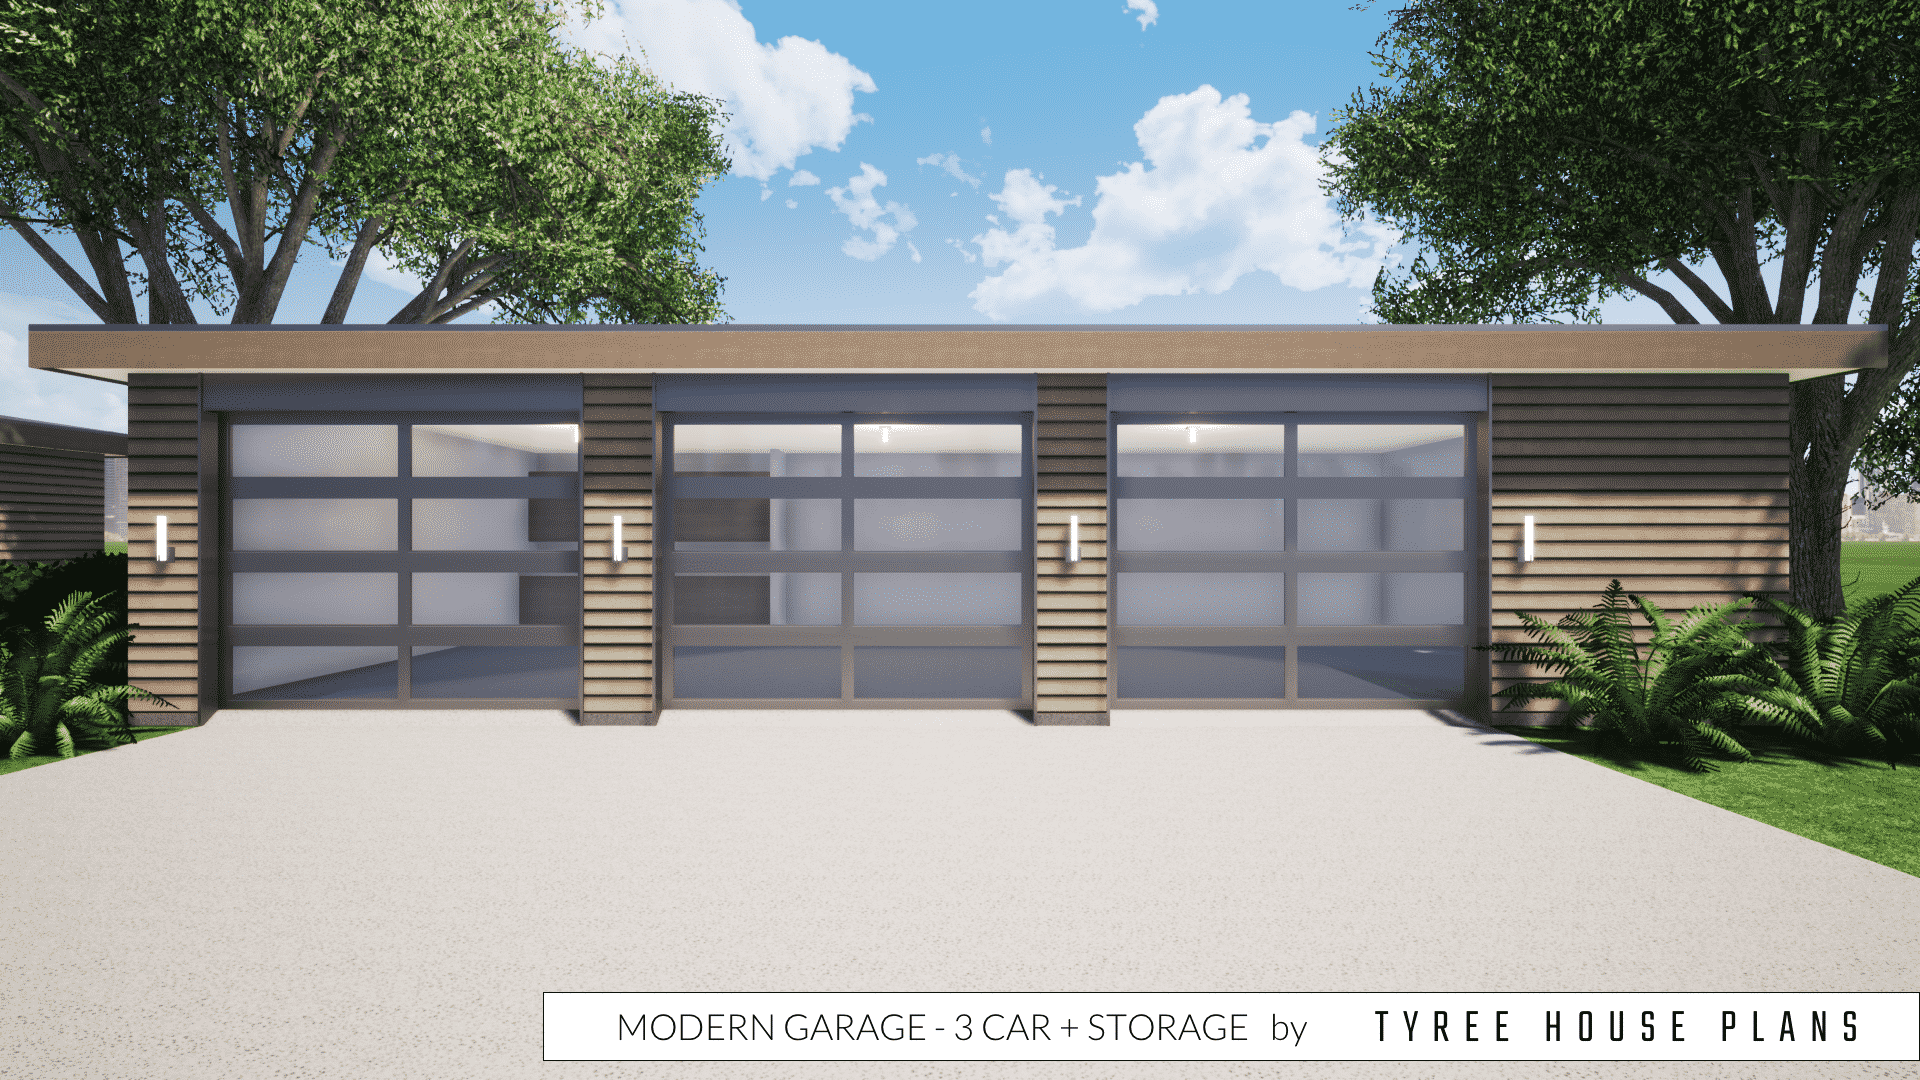 Modern Garage Plan - 3 Car with Storage by Tyree House Plans